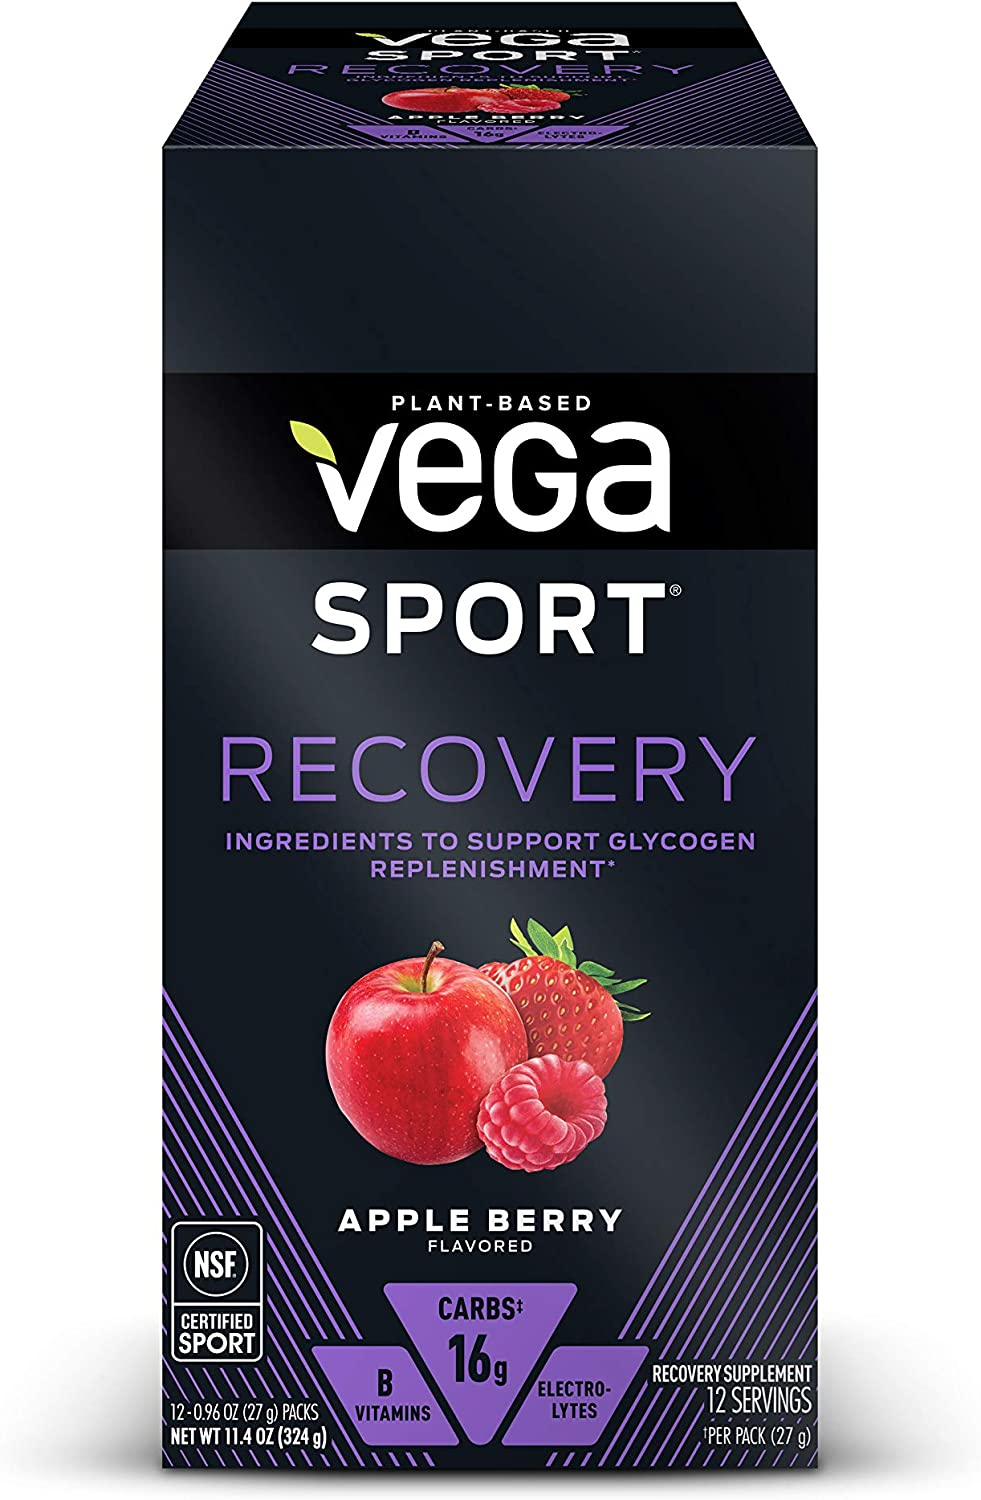 Vega Sport Recovery, Apple Berry - Post Workout Recovery Drink Mix with Electrolytes, Carbohydrates, B-Vitamins and Protein, Vegan, Lactose Free, Dairy Free, Gluten Free, Non GMO (12 Count )